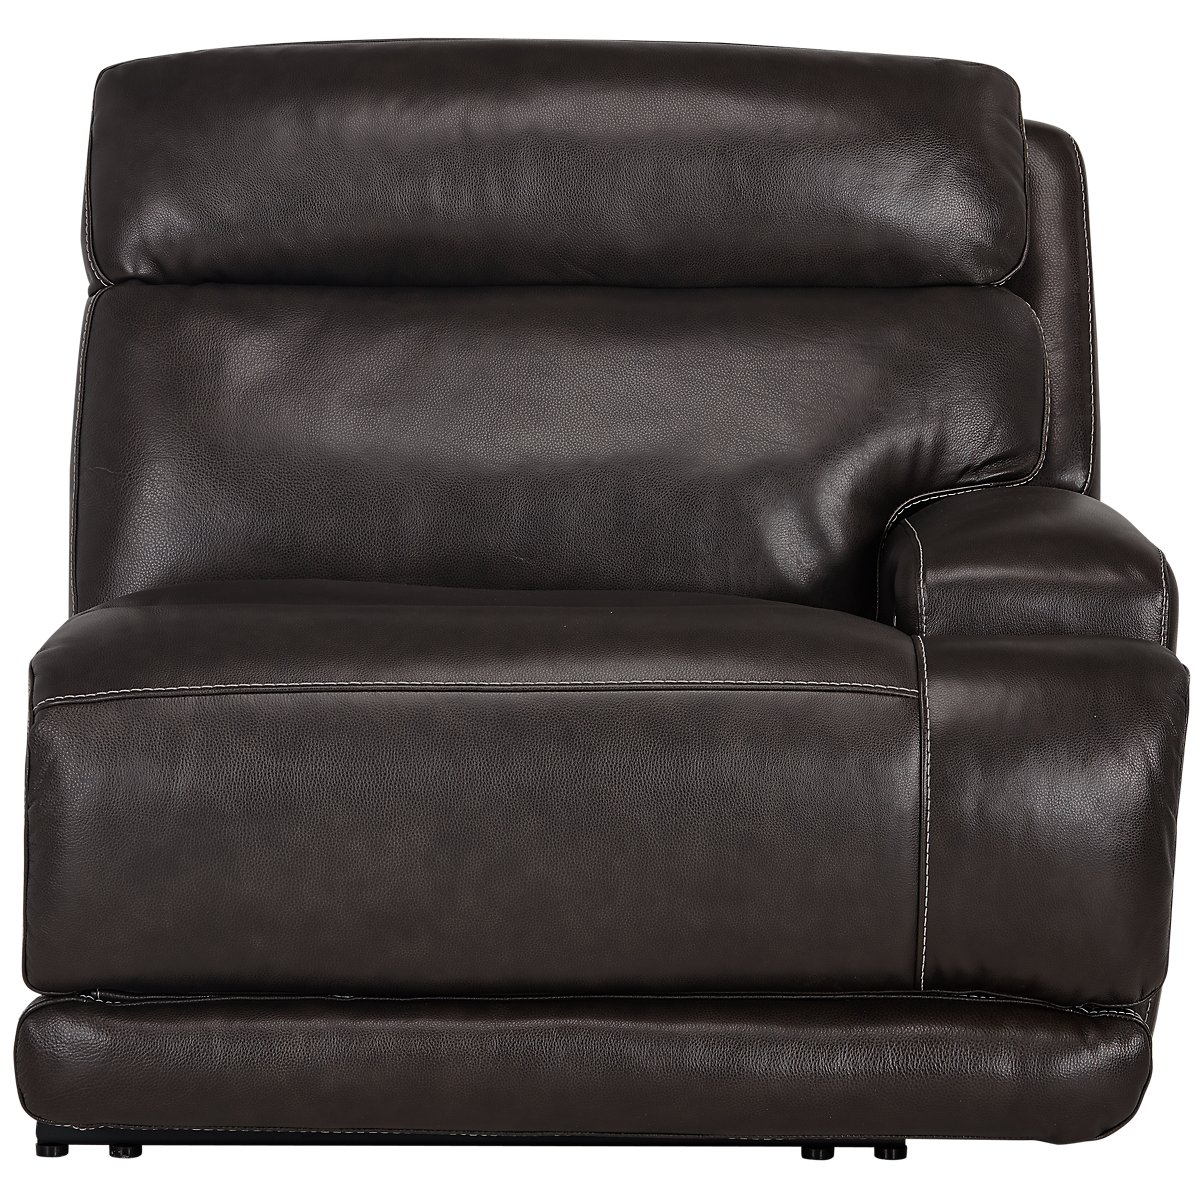 city furniture gable dark brown leather left chaise power reclining sectional. Black Bedroom Furniture Sets. Home Design Ideas